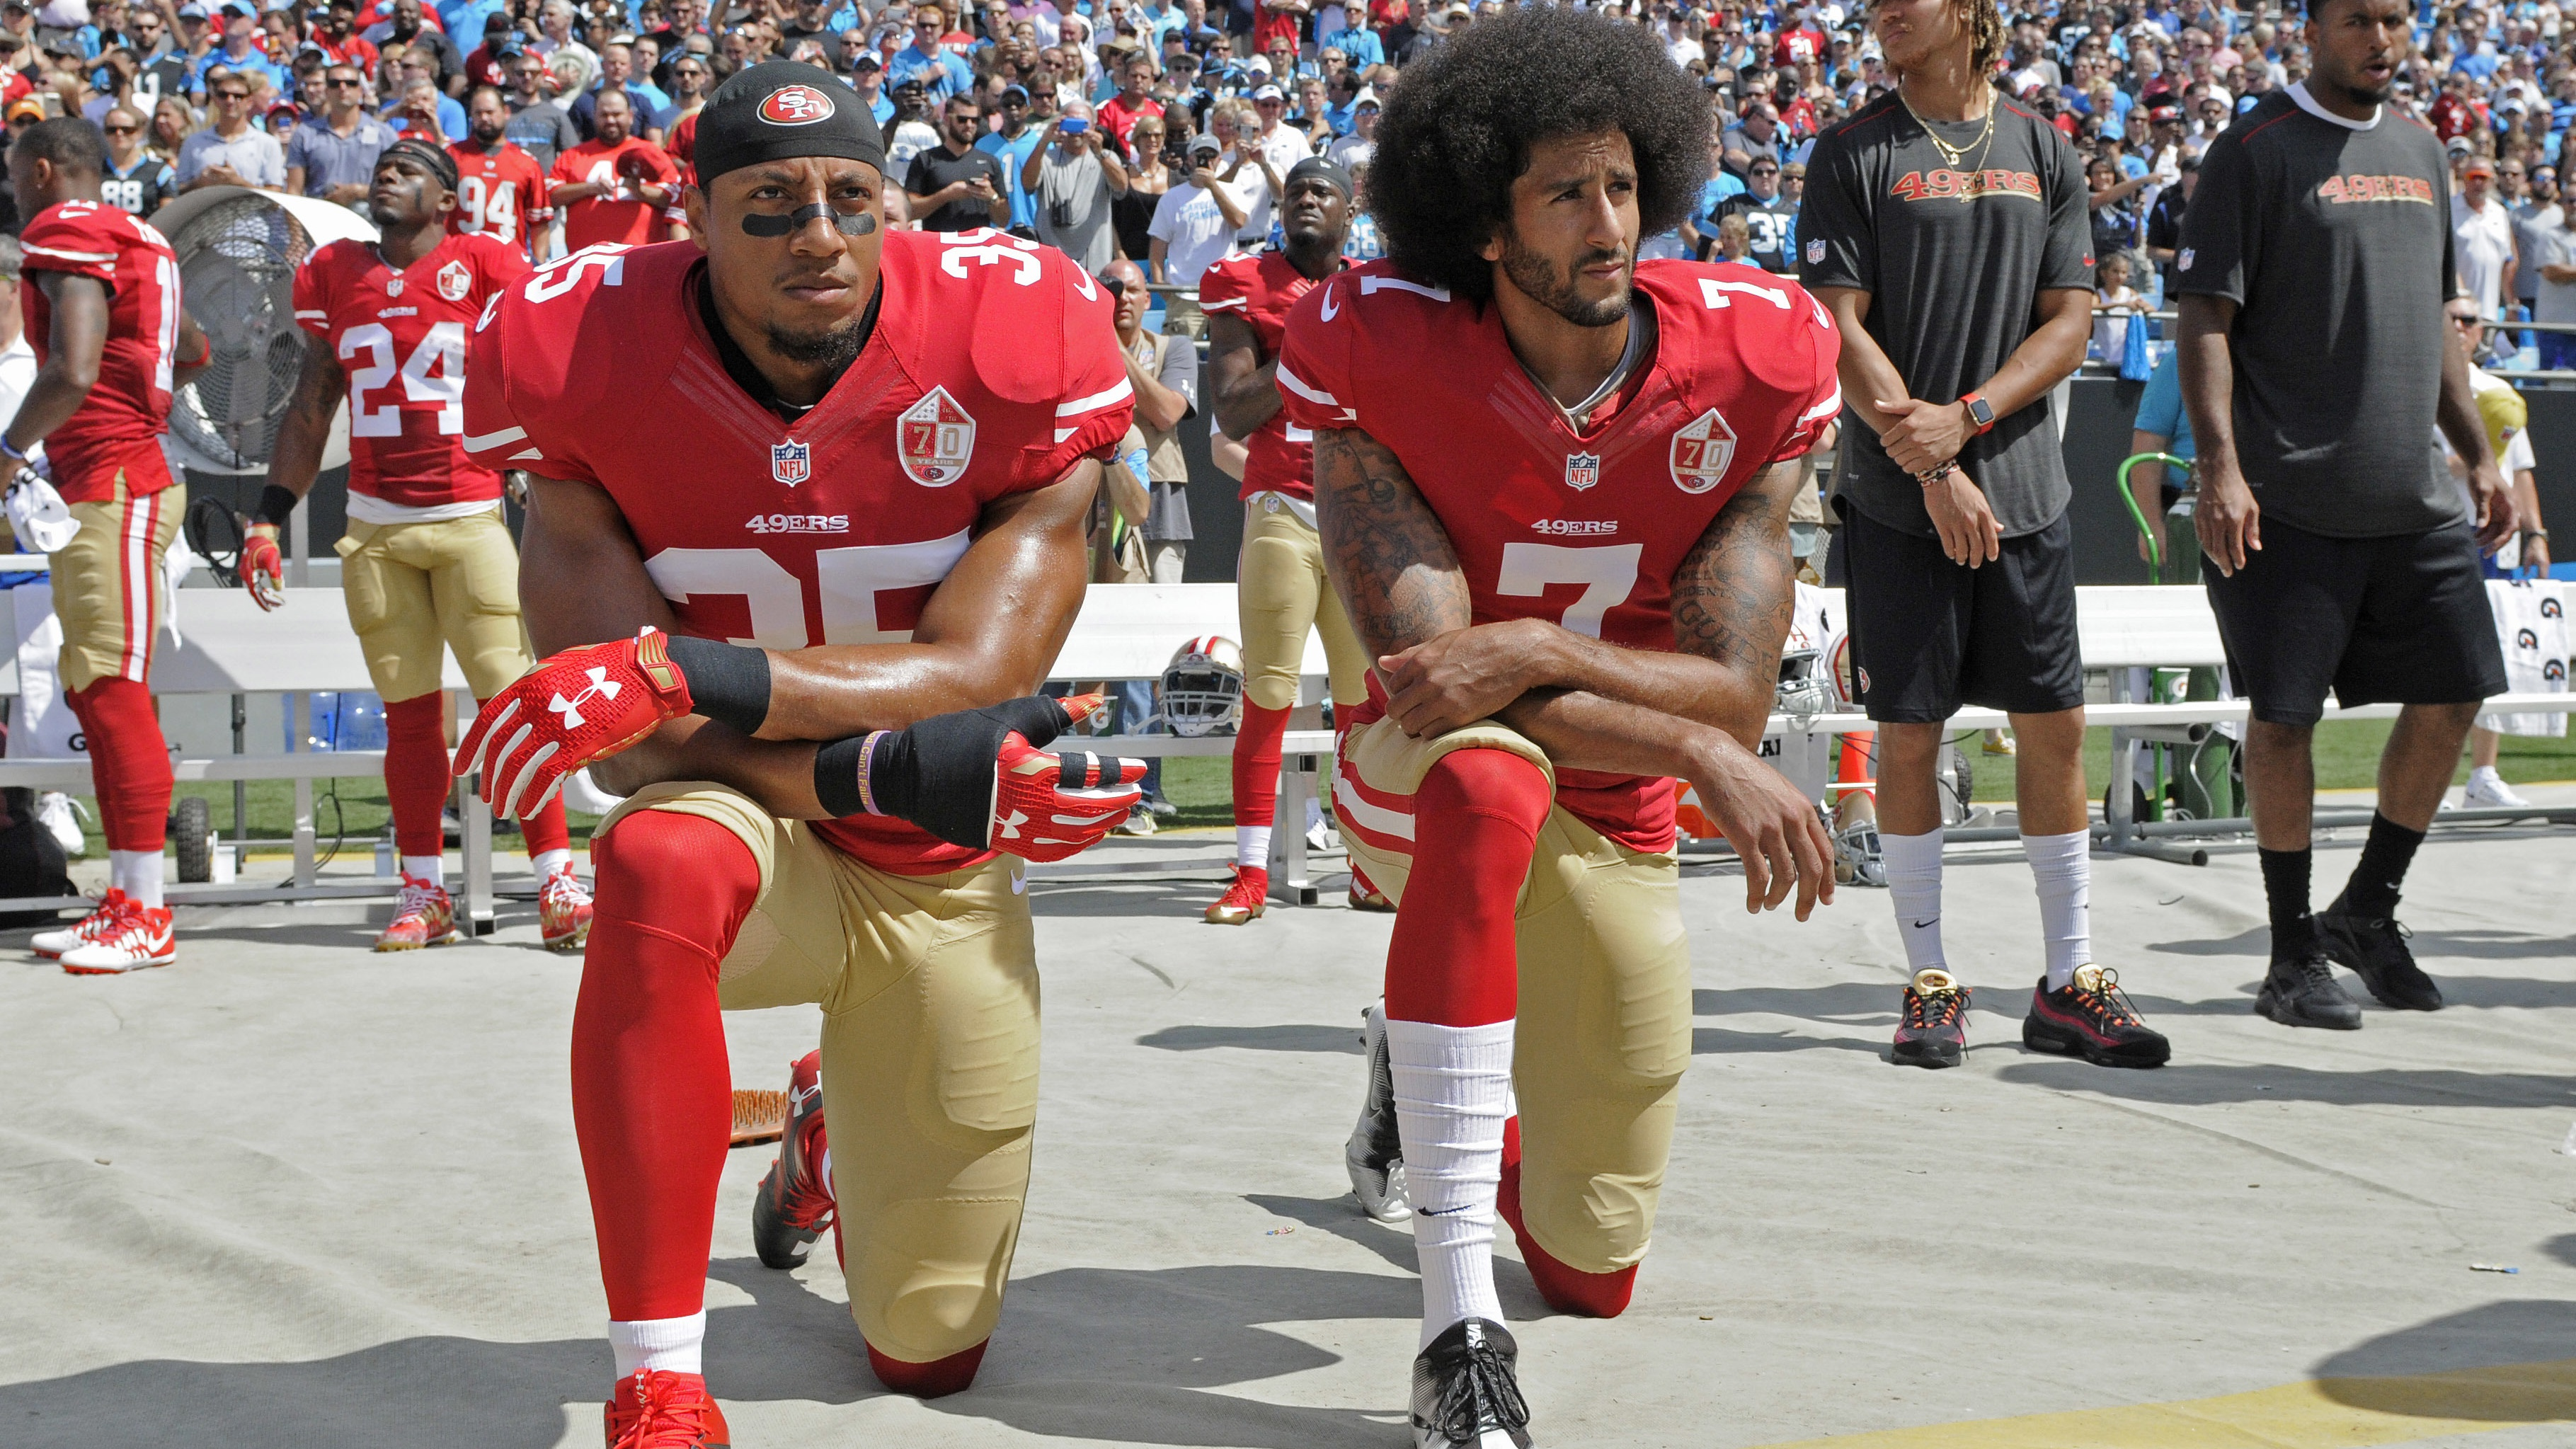 Image result for who's the guy who took a knee in the NFL?